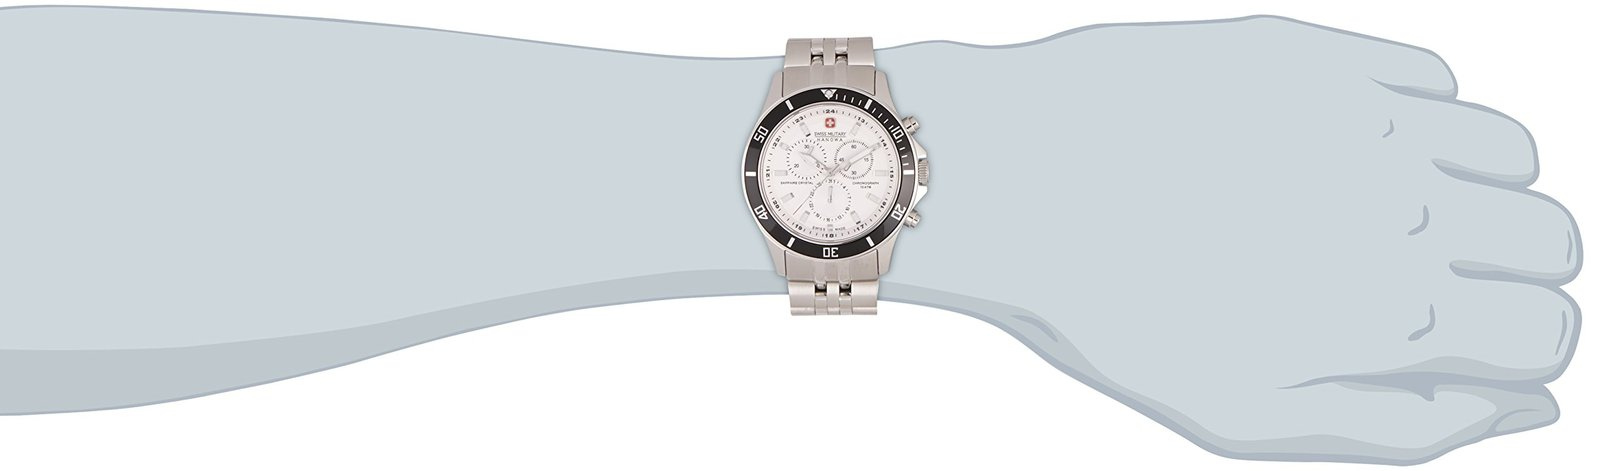 Swiss Military Mens 'Flagship' Watch 6-5183.04.001.07